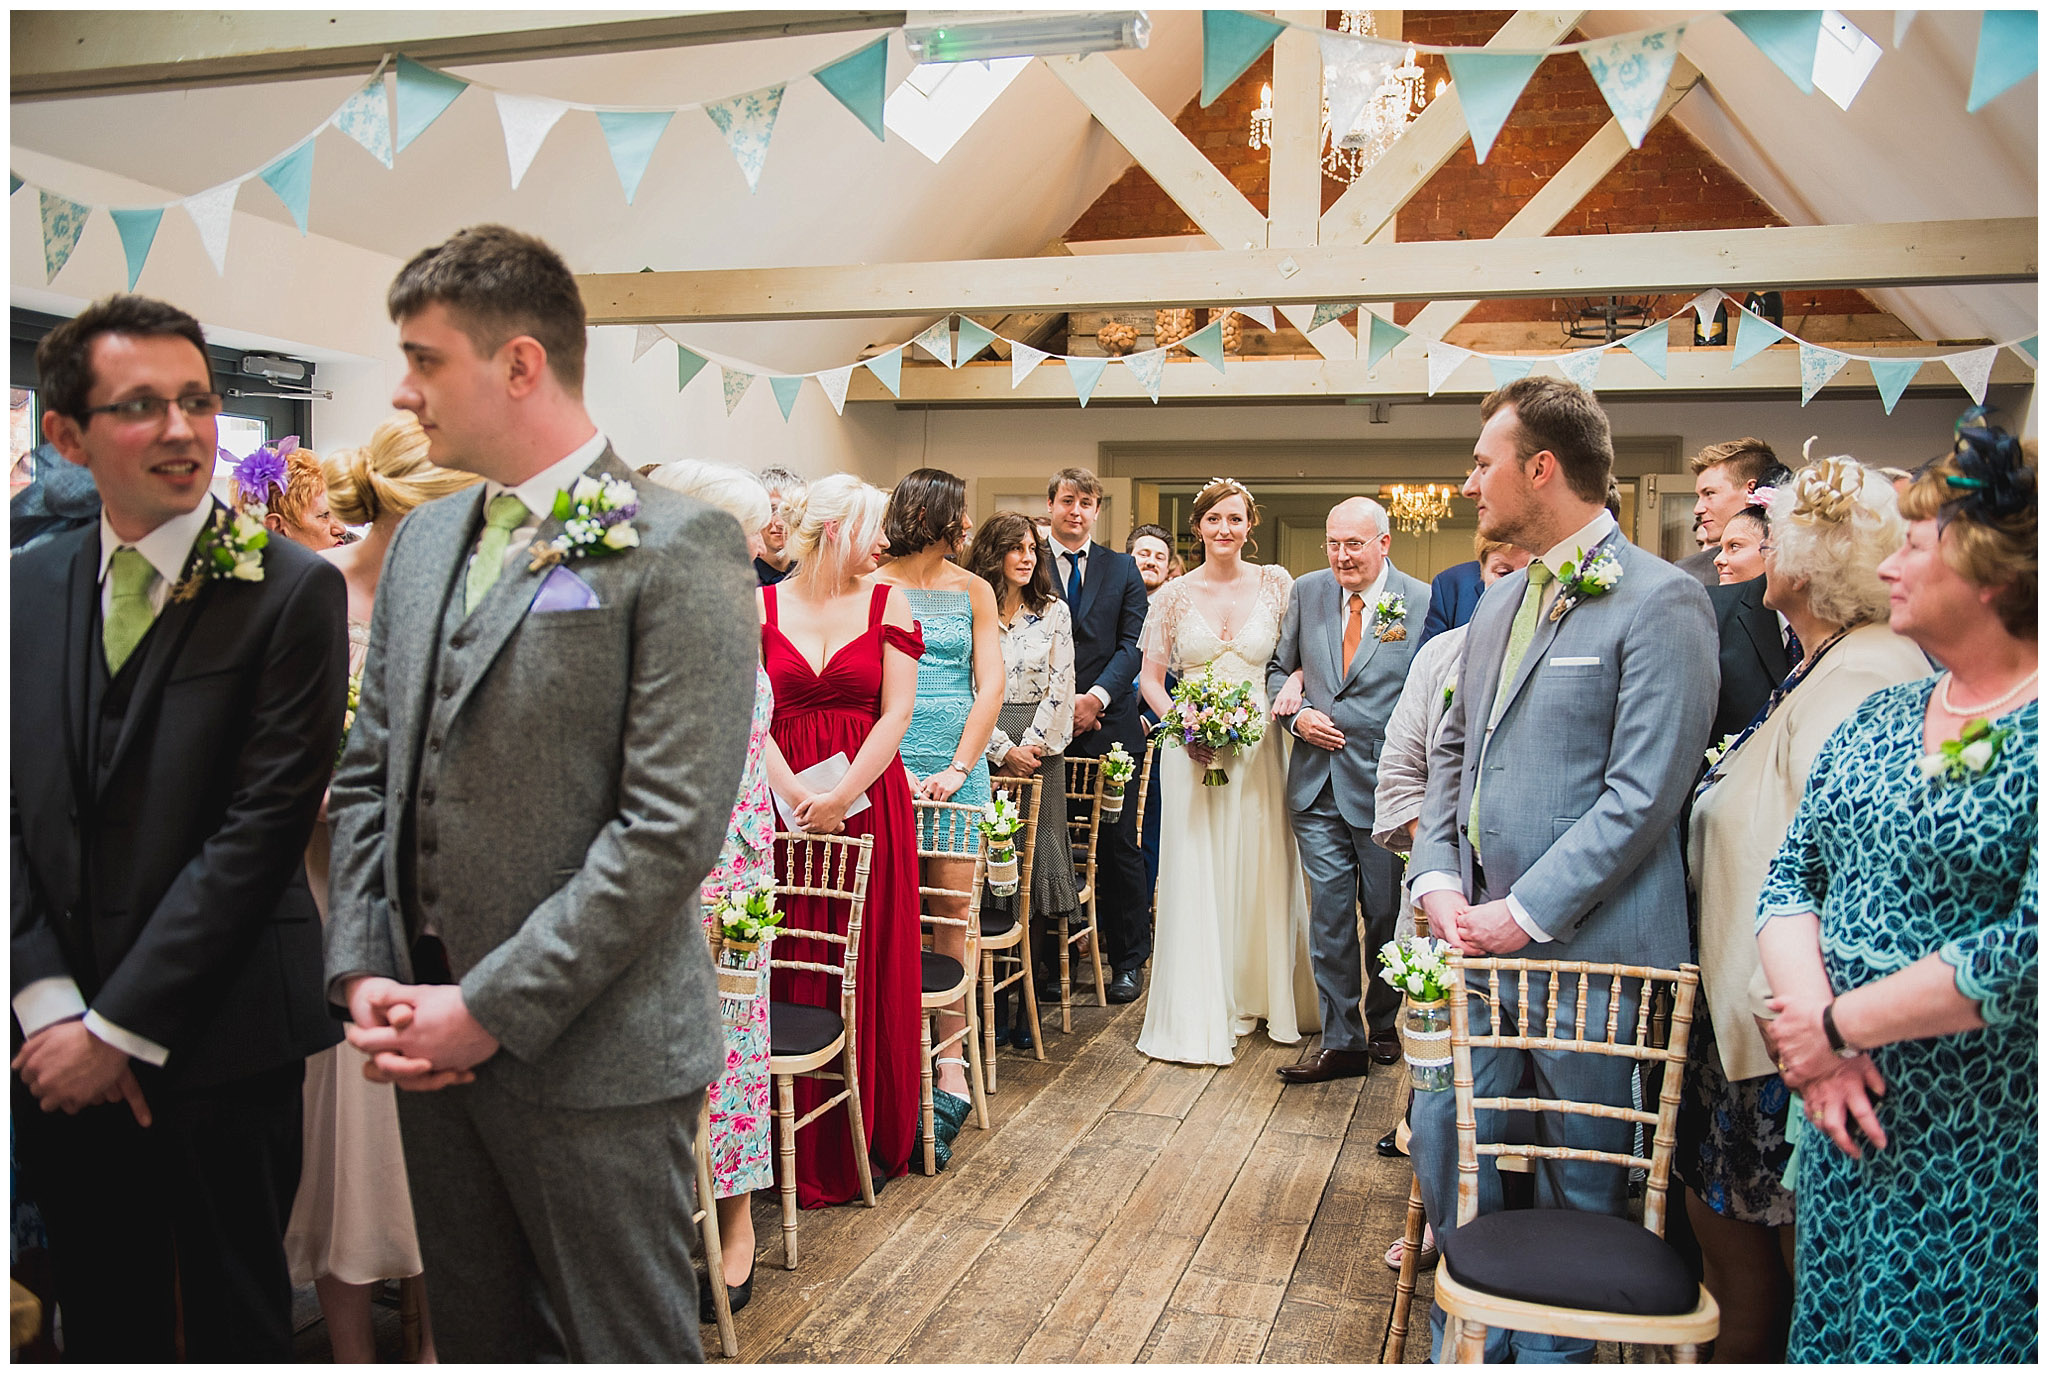 Sarah-&-Dan-The-Old-Vicarage-Wedding-Venue-Dorset-Photographer-13